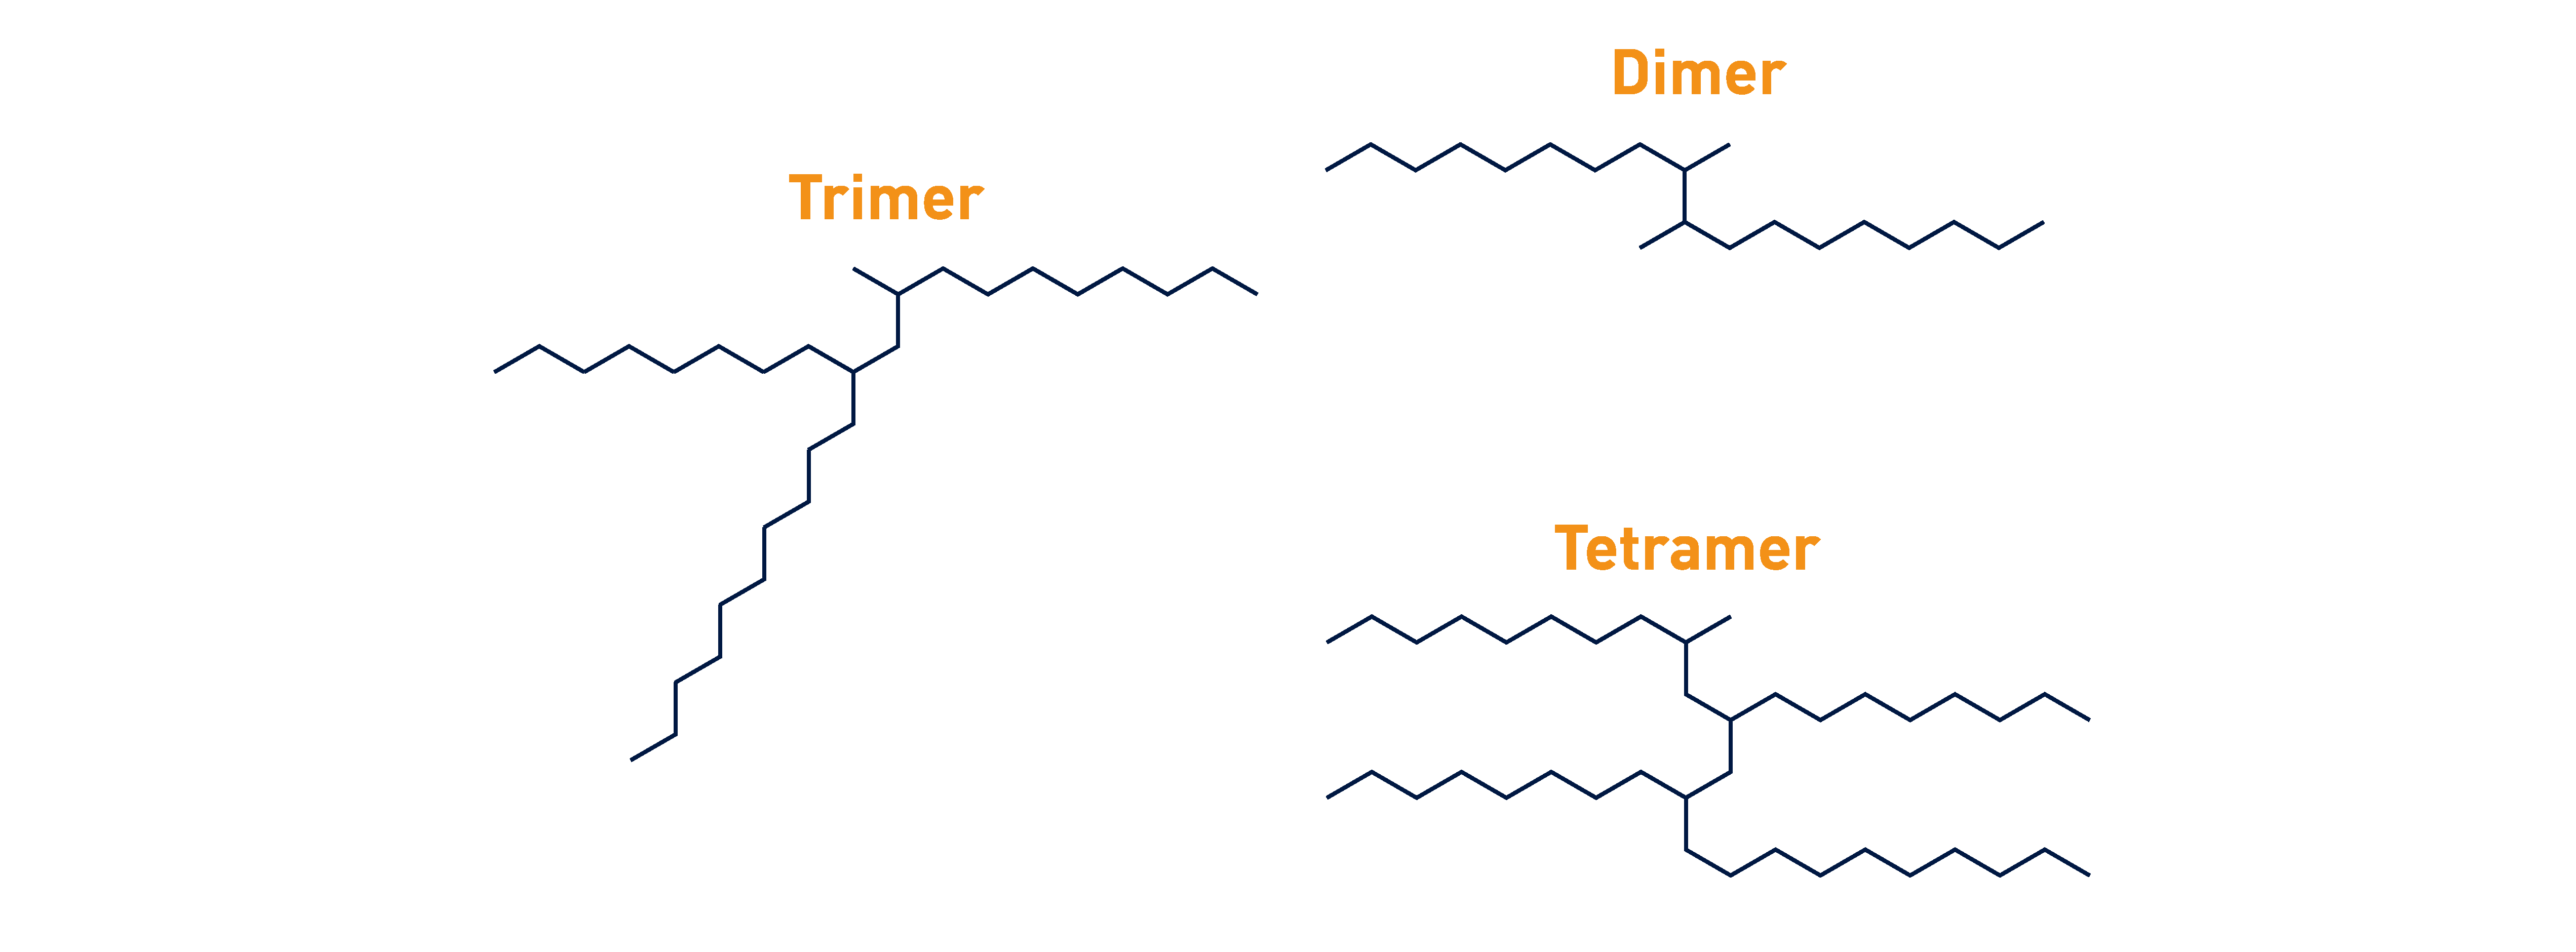 INEOS Oligomers Products